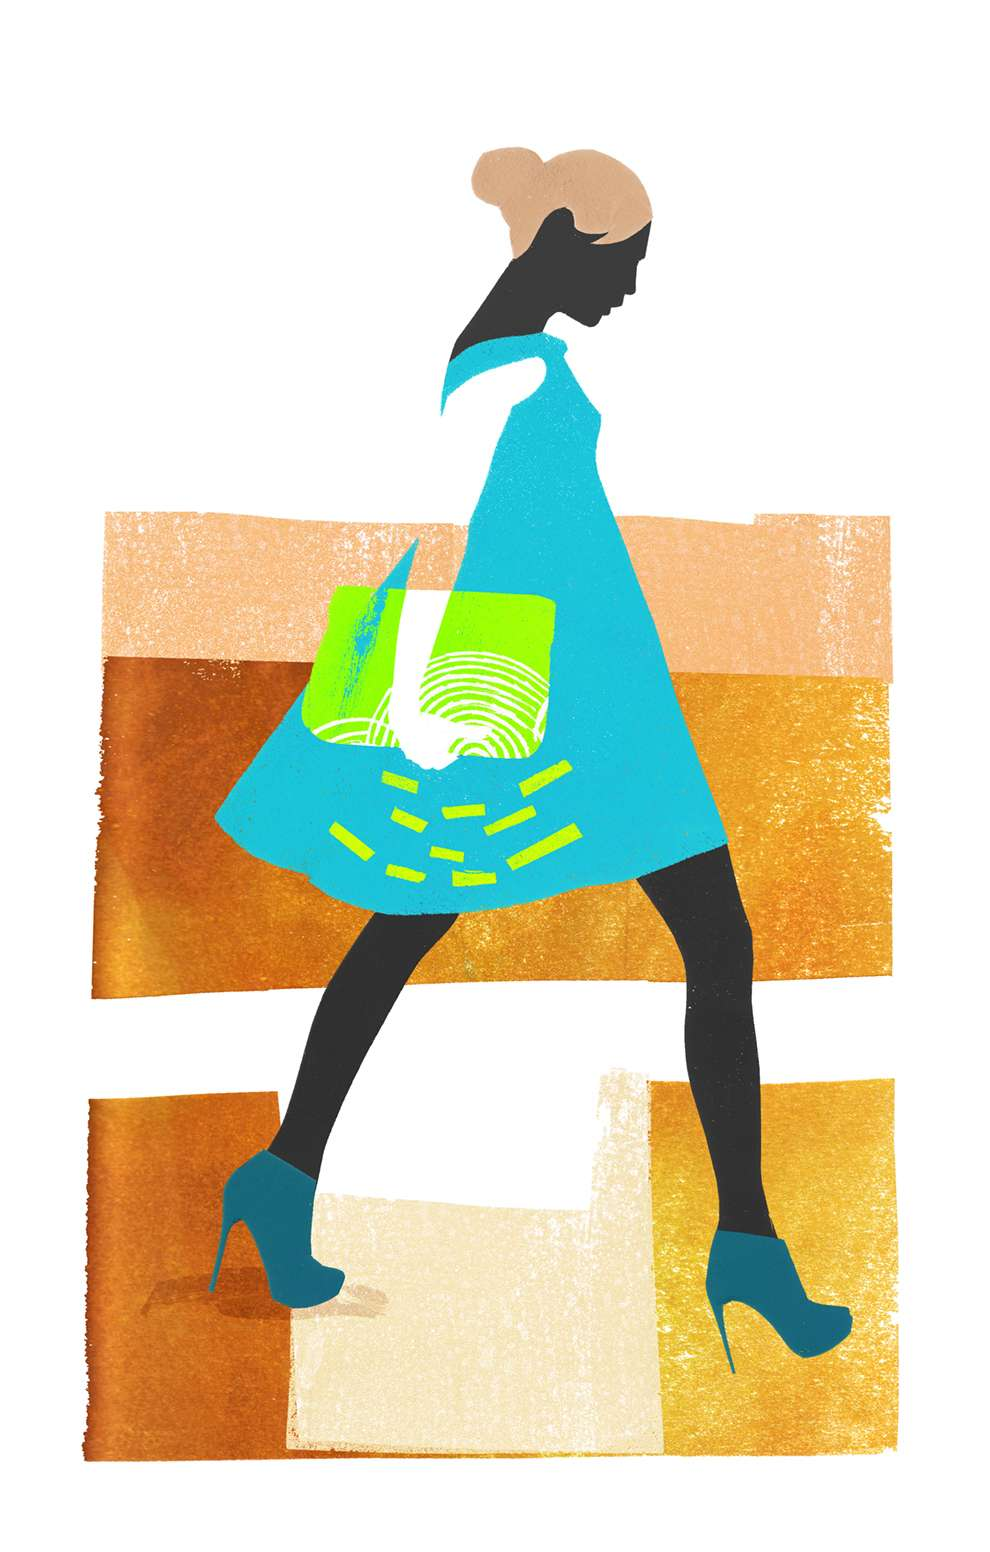 Jessie Ford, Digital illustration of a woman walking